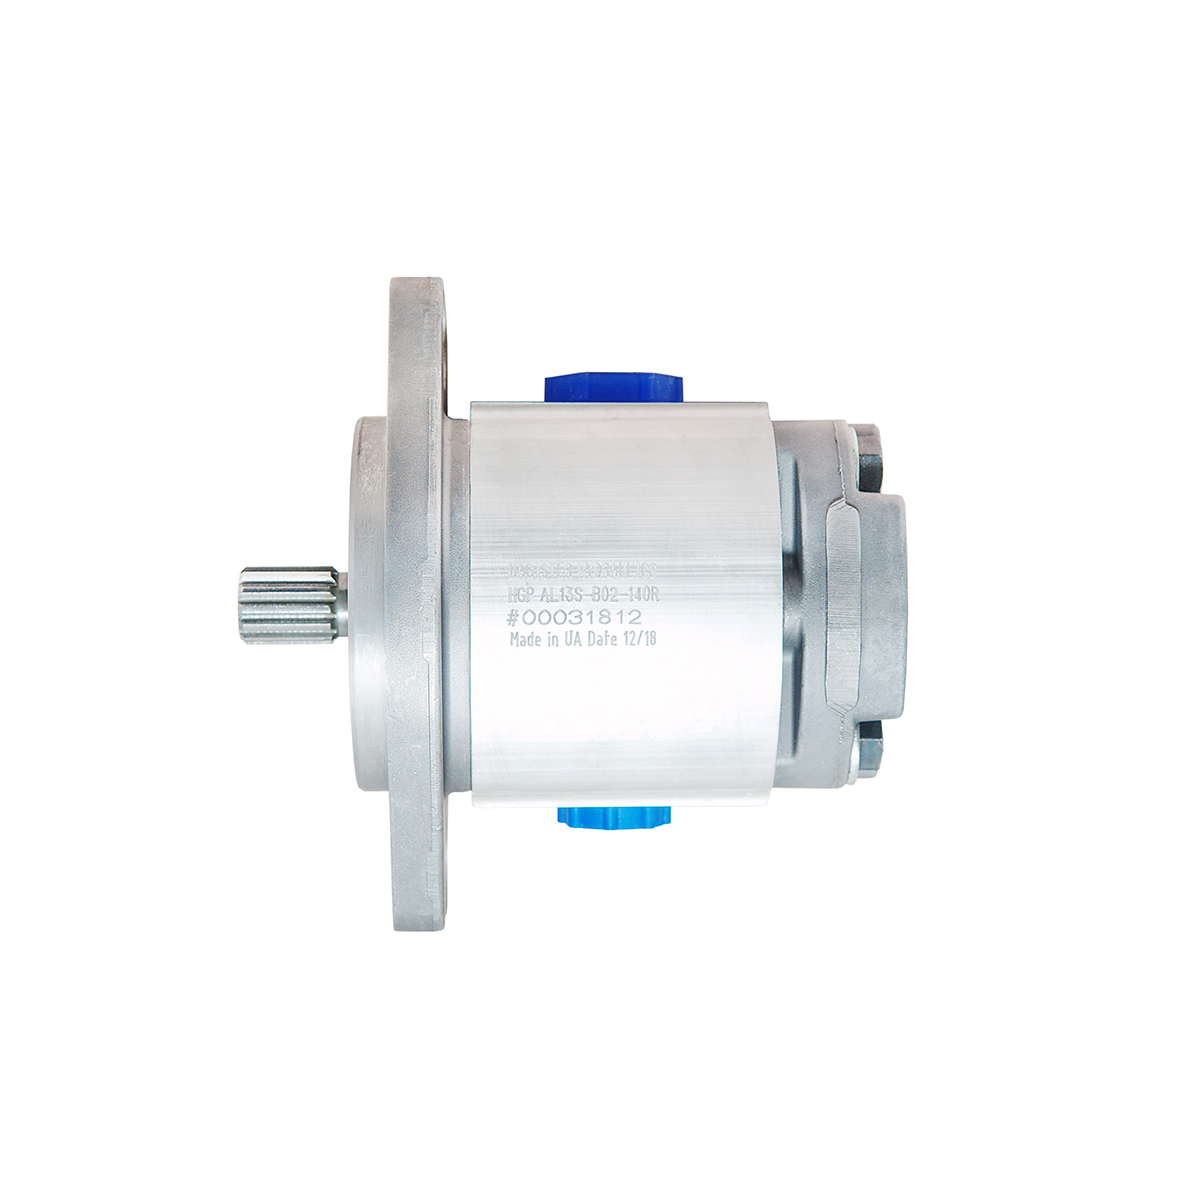 2.74 CID hydraulic gear pump, 13 tooth spline shaft clockwise gear pump | Magister Hydraulics